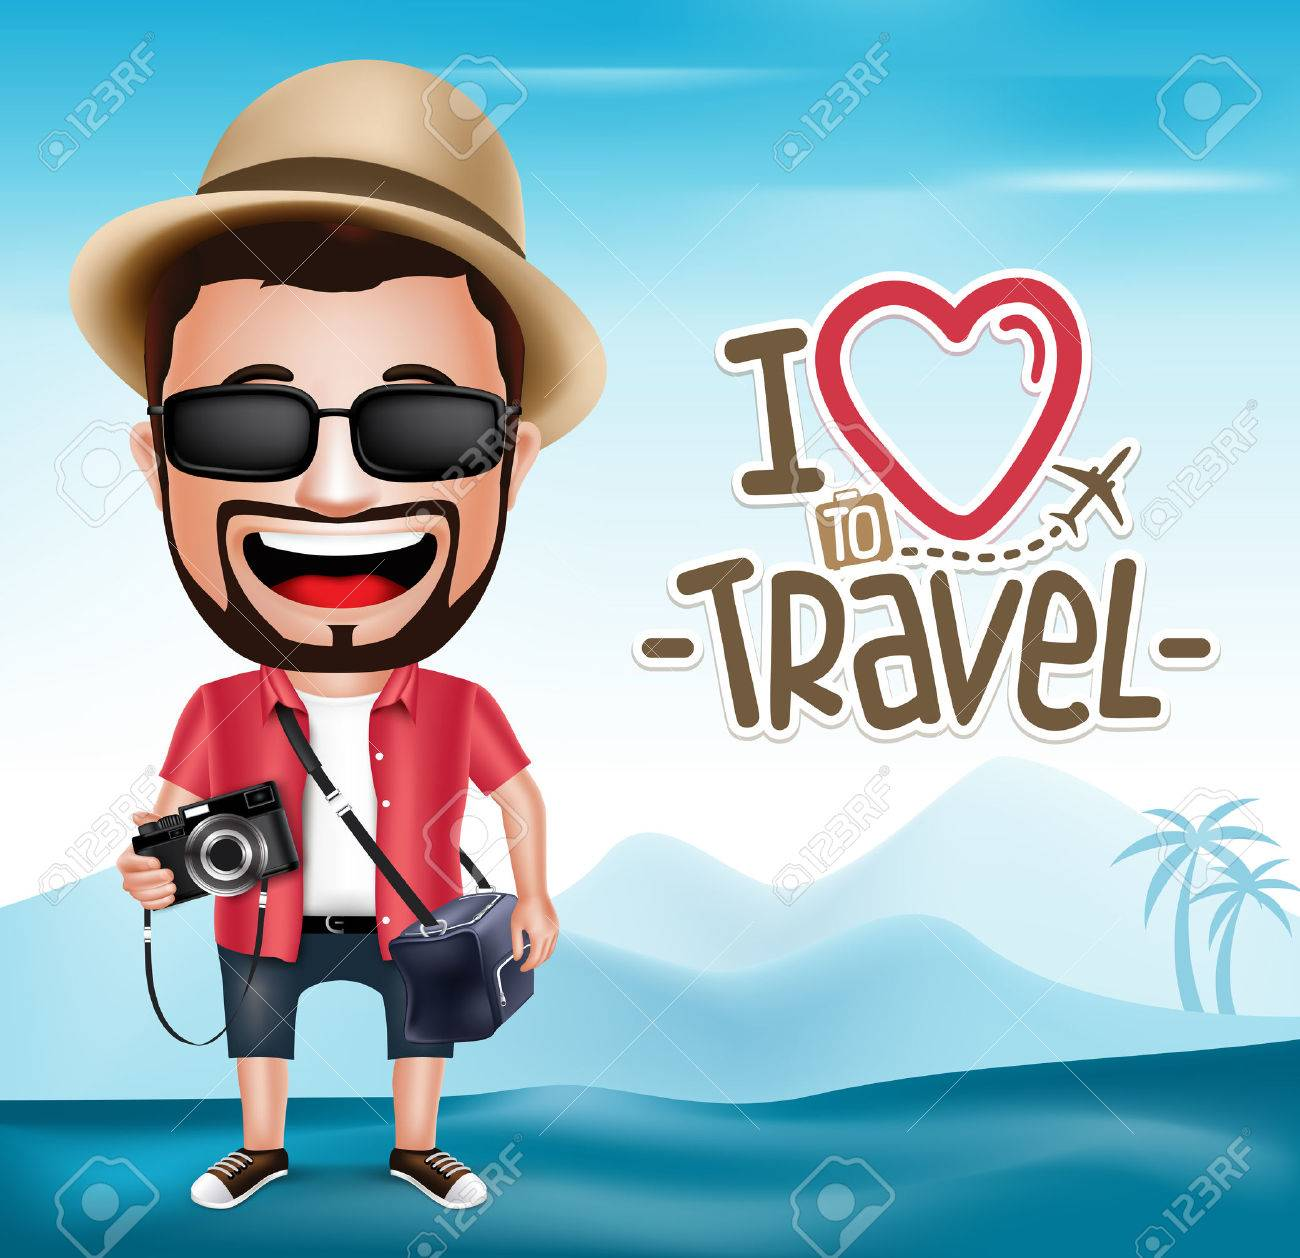 3D Realistic Tourist Man Character Wearing Photographer Outfit with Mountain Background. Vector Illustration - 44862340